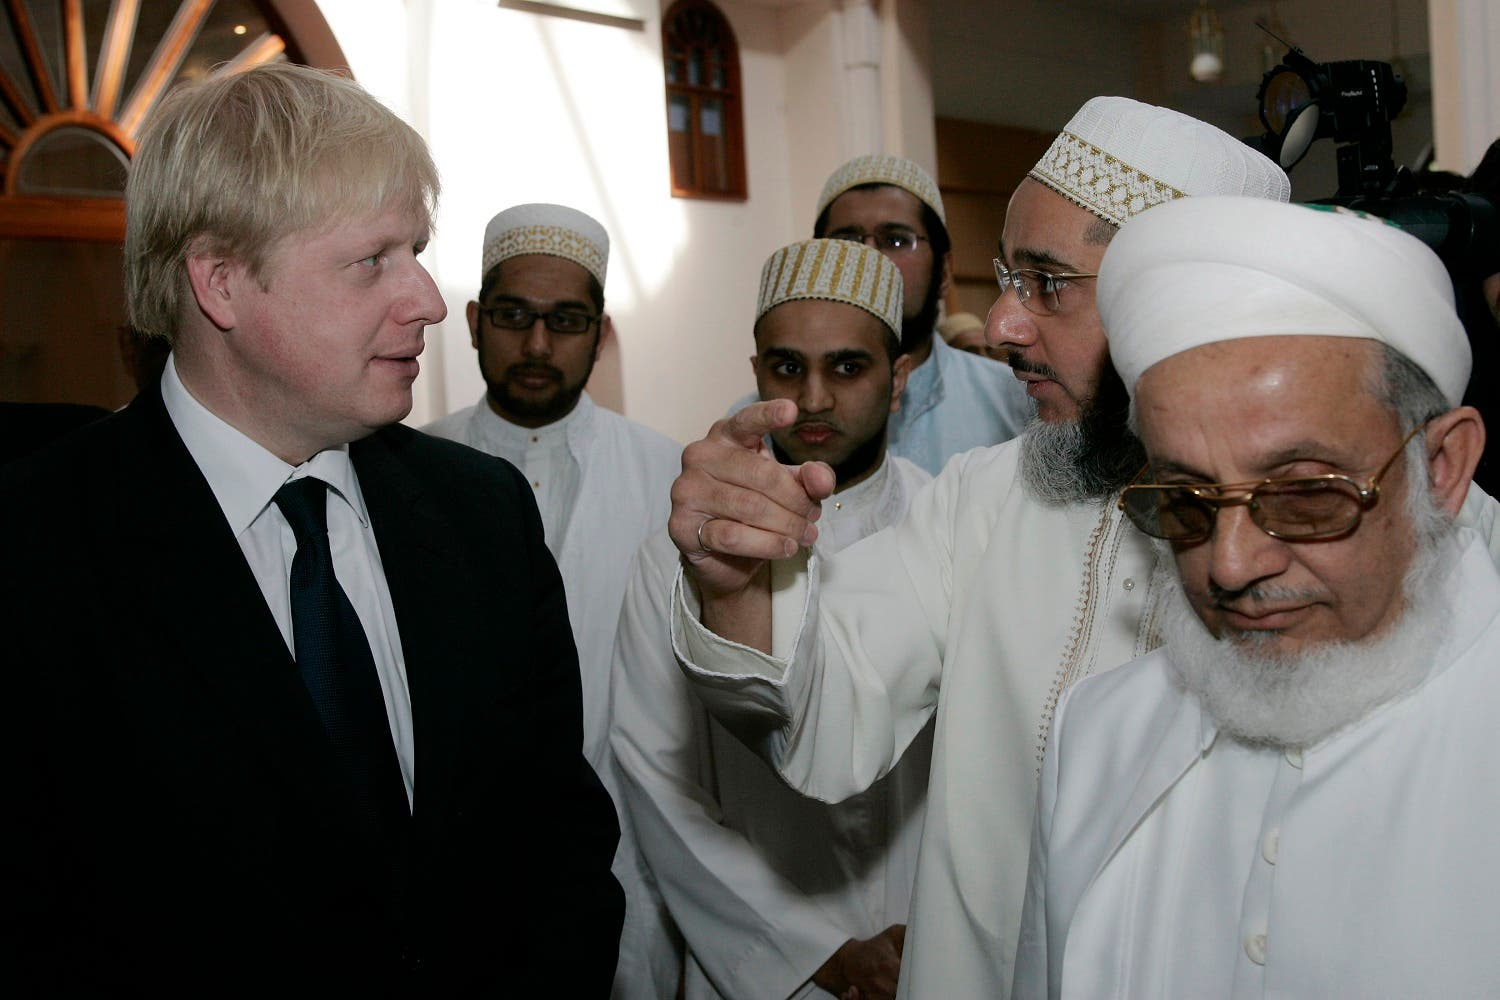 Boris Johnson talks to members of Dawoodi Bohra community during a visit to Husseini Mosque in west London during his mayoral campaign, Friday, April 4, 2008. (File photo: AP)